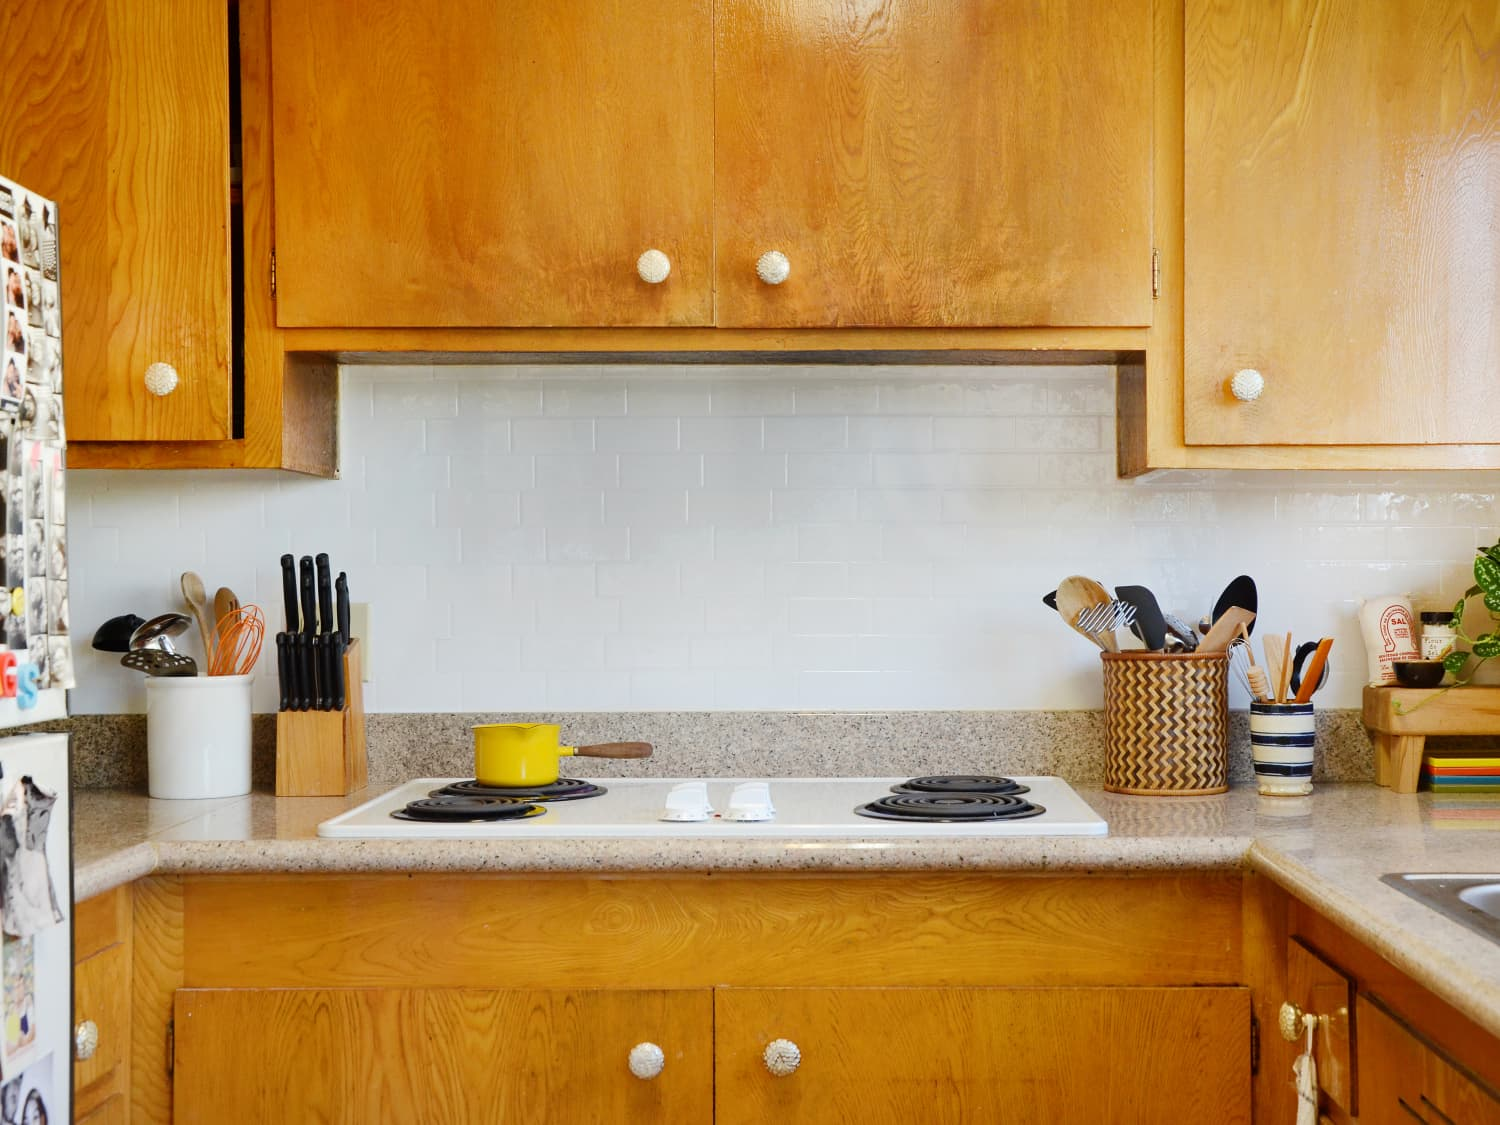 Adhesive Smart Tiles Backsplash Review How Renter Friendly Is It Apartment Therapy